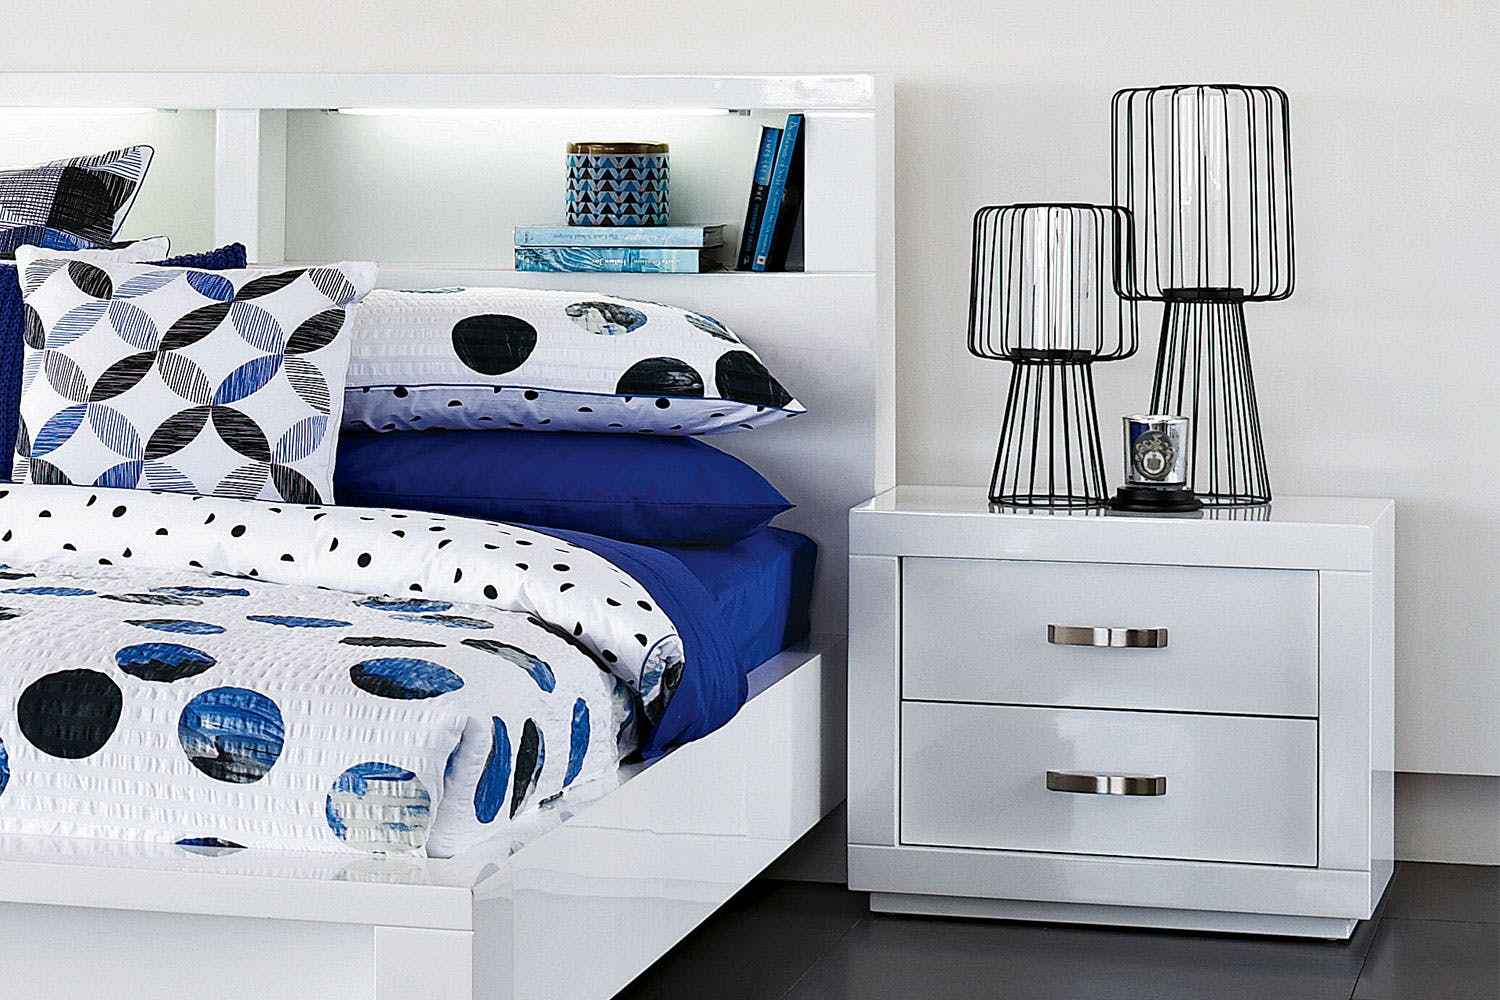 White Bedside Table. Summit Bedside Table by Stoke Furniture   Harvey Norman New Zealand